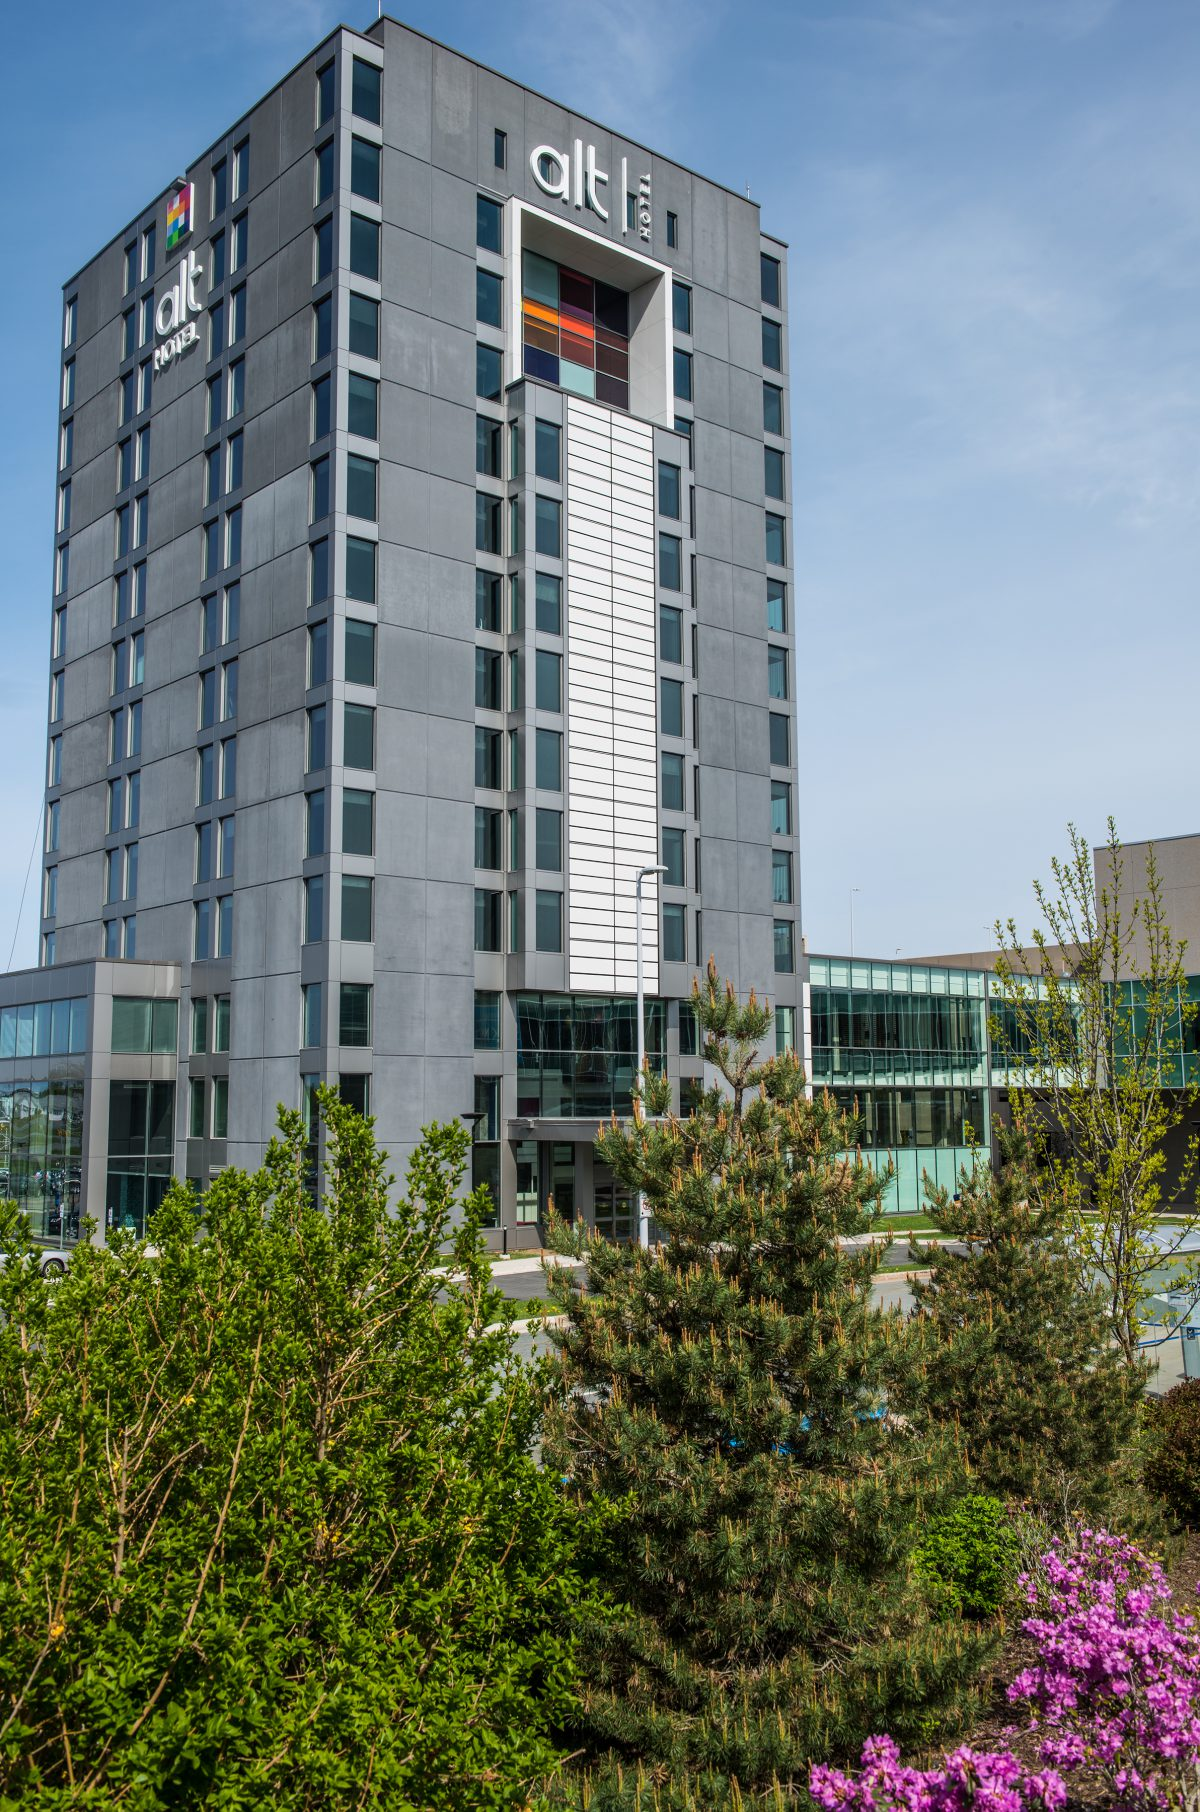 Marco alt hotel halifax airport for Small hotel groups